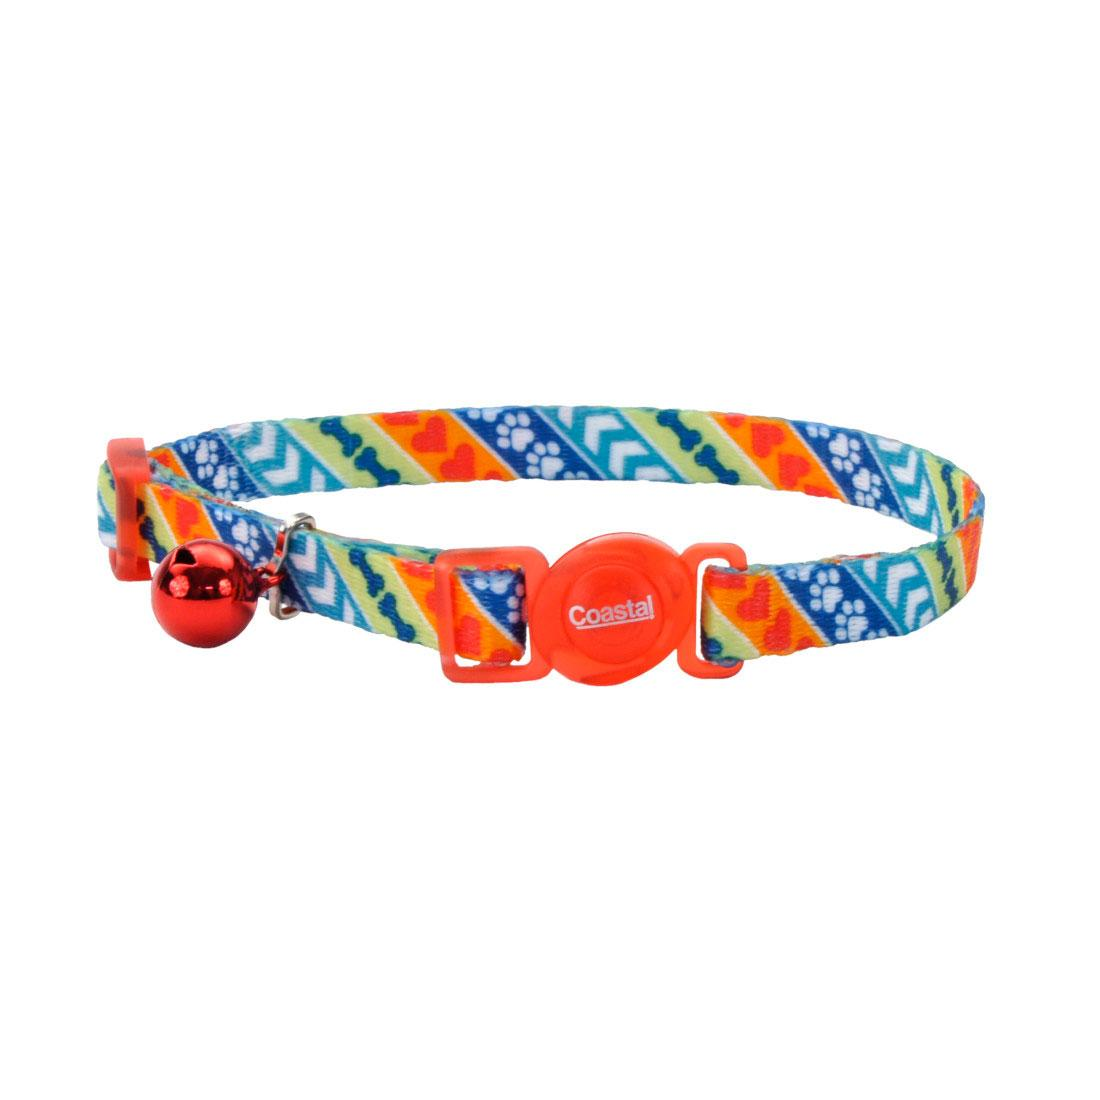 Safe Cat Fashion Adjustable Breakaway Cat Collar, Resolve, 3/8-in x 8-12-in (Size: 3/8-in x 8-12-in) Image